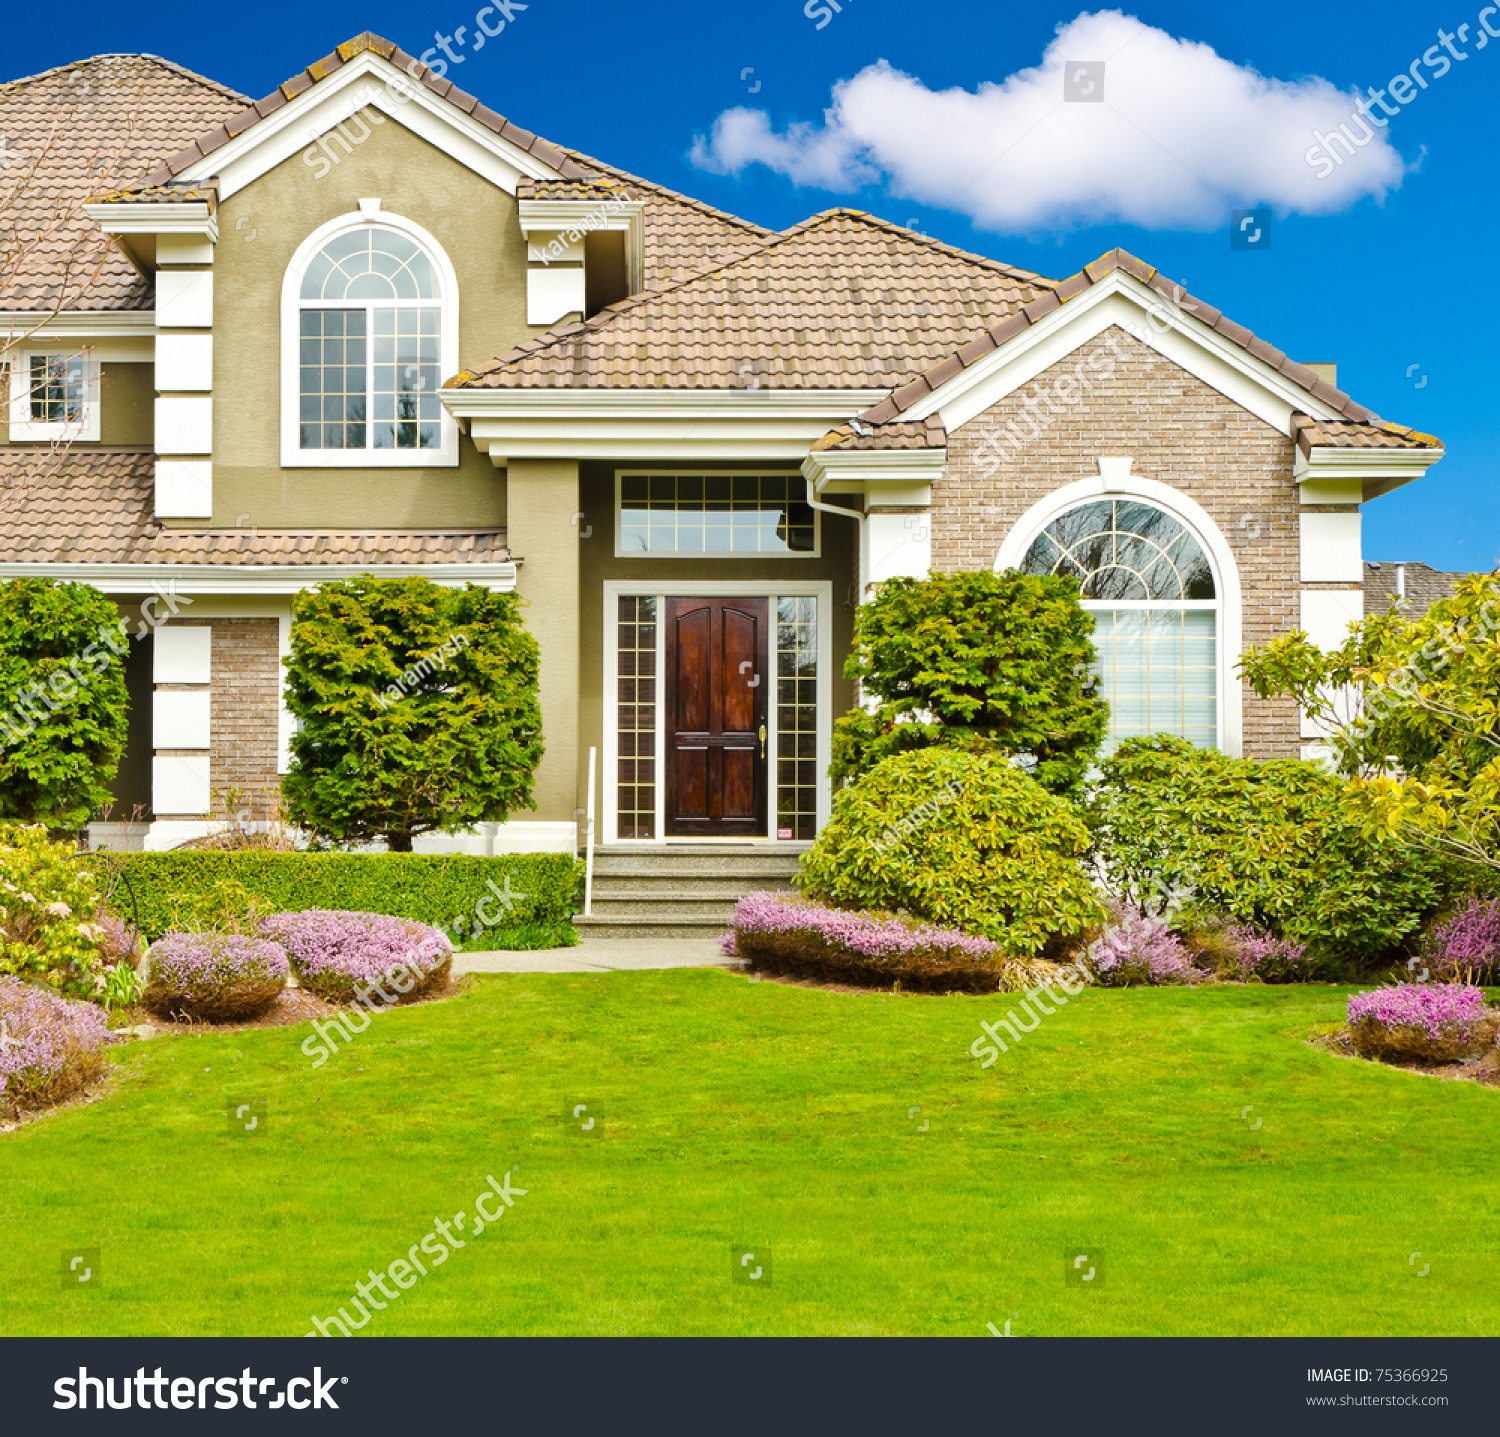 Fragment nice house stock photo 75366925 shutterstock for Nice house photo